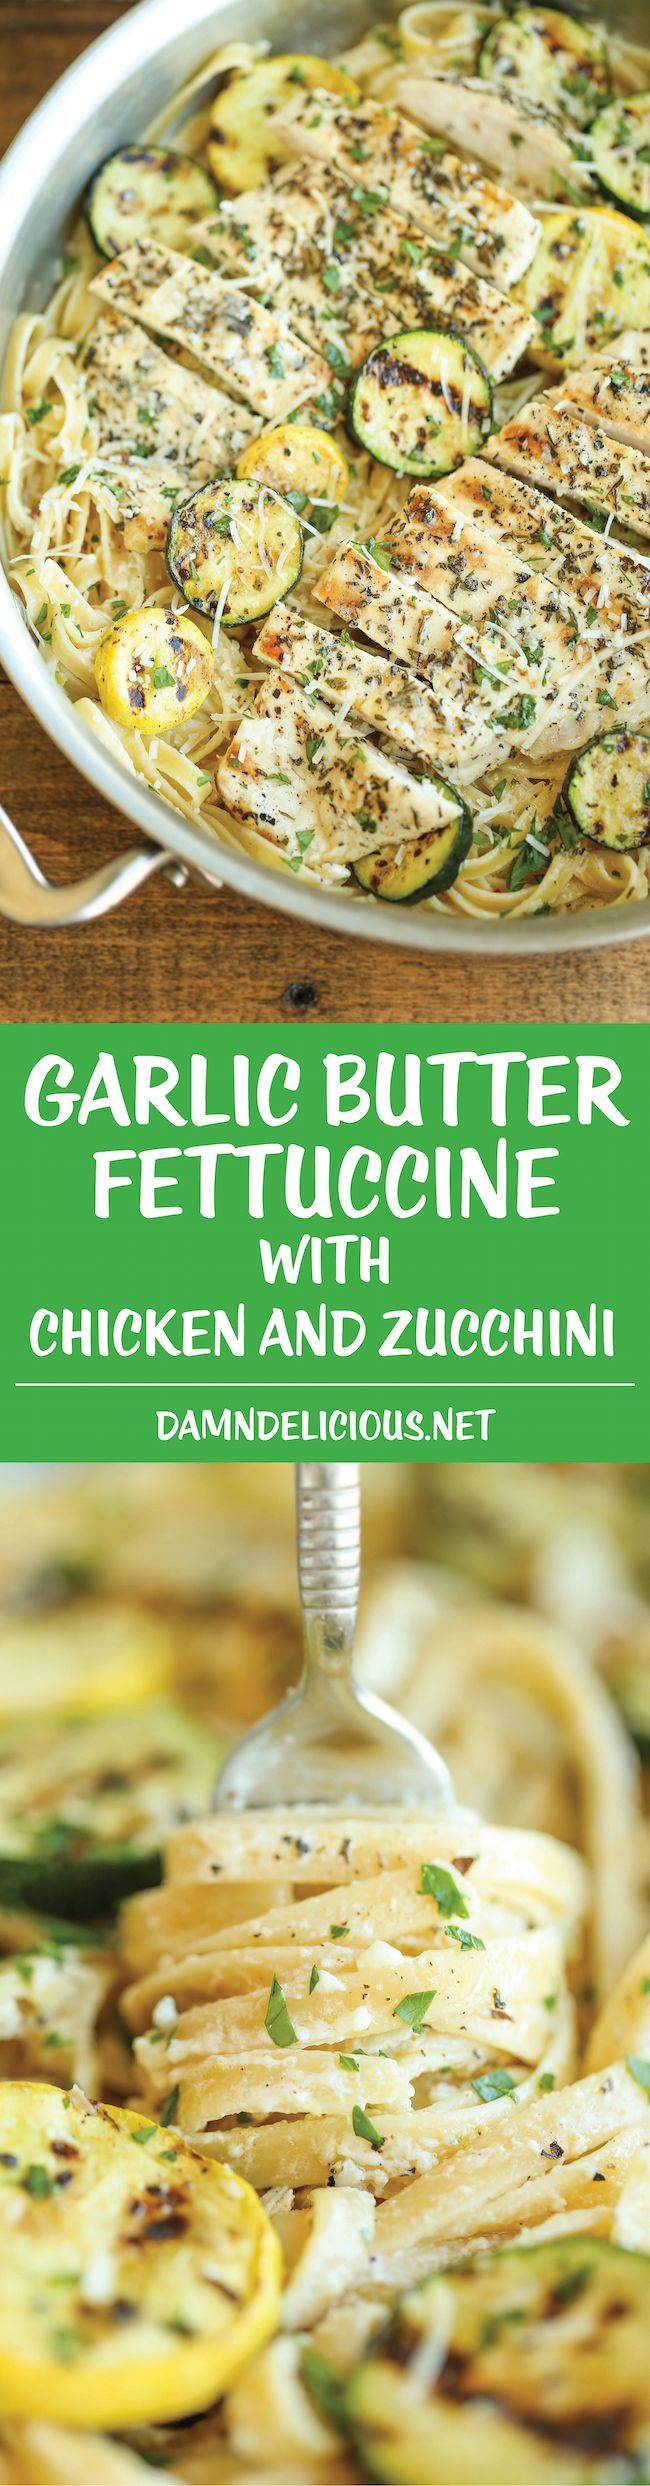 Garlic Butter Fettuccine with Chicken and Zucchini: So buttery, so garlicky, and just so creamy! Made with lemon-herb chicken and crisp-tender zucchini.